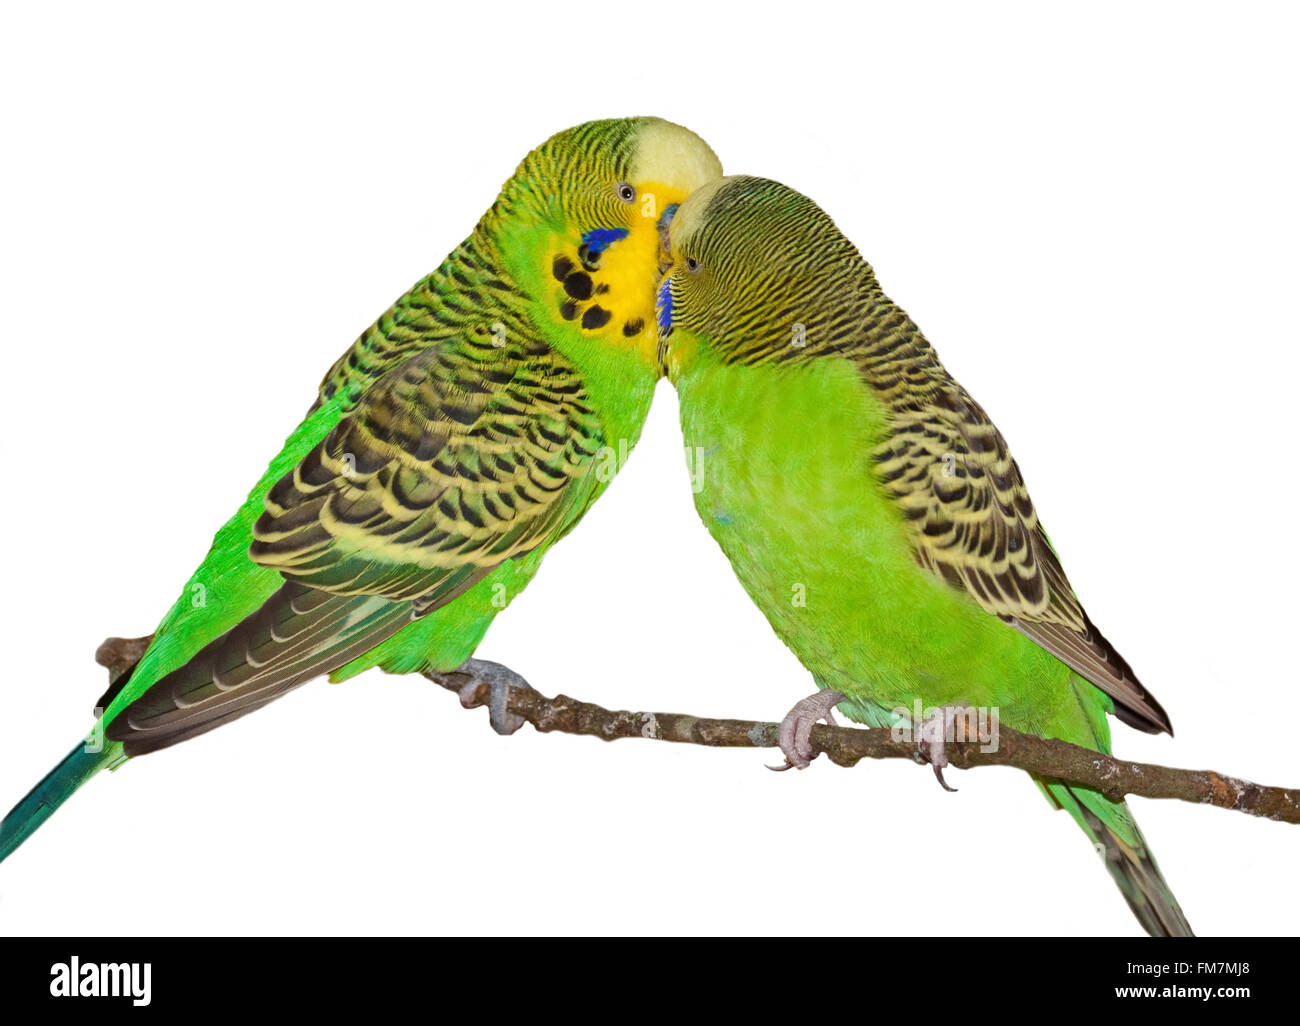 Two Green Bugies Bonding - Stock Image